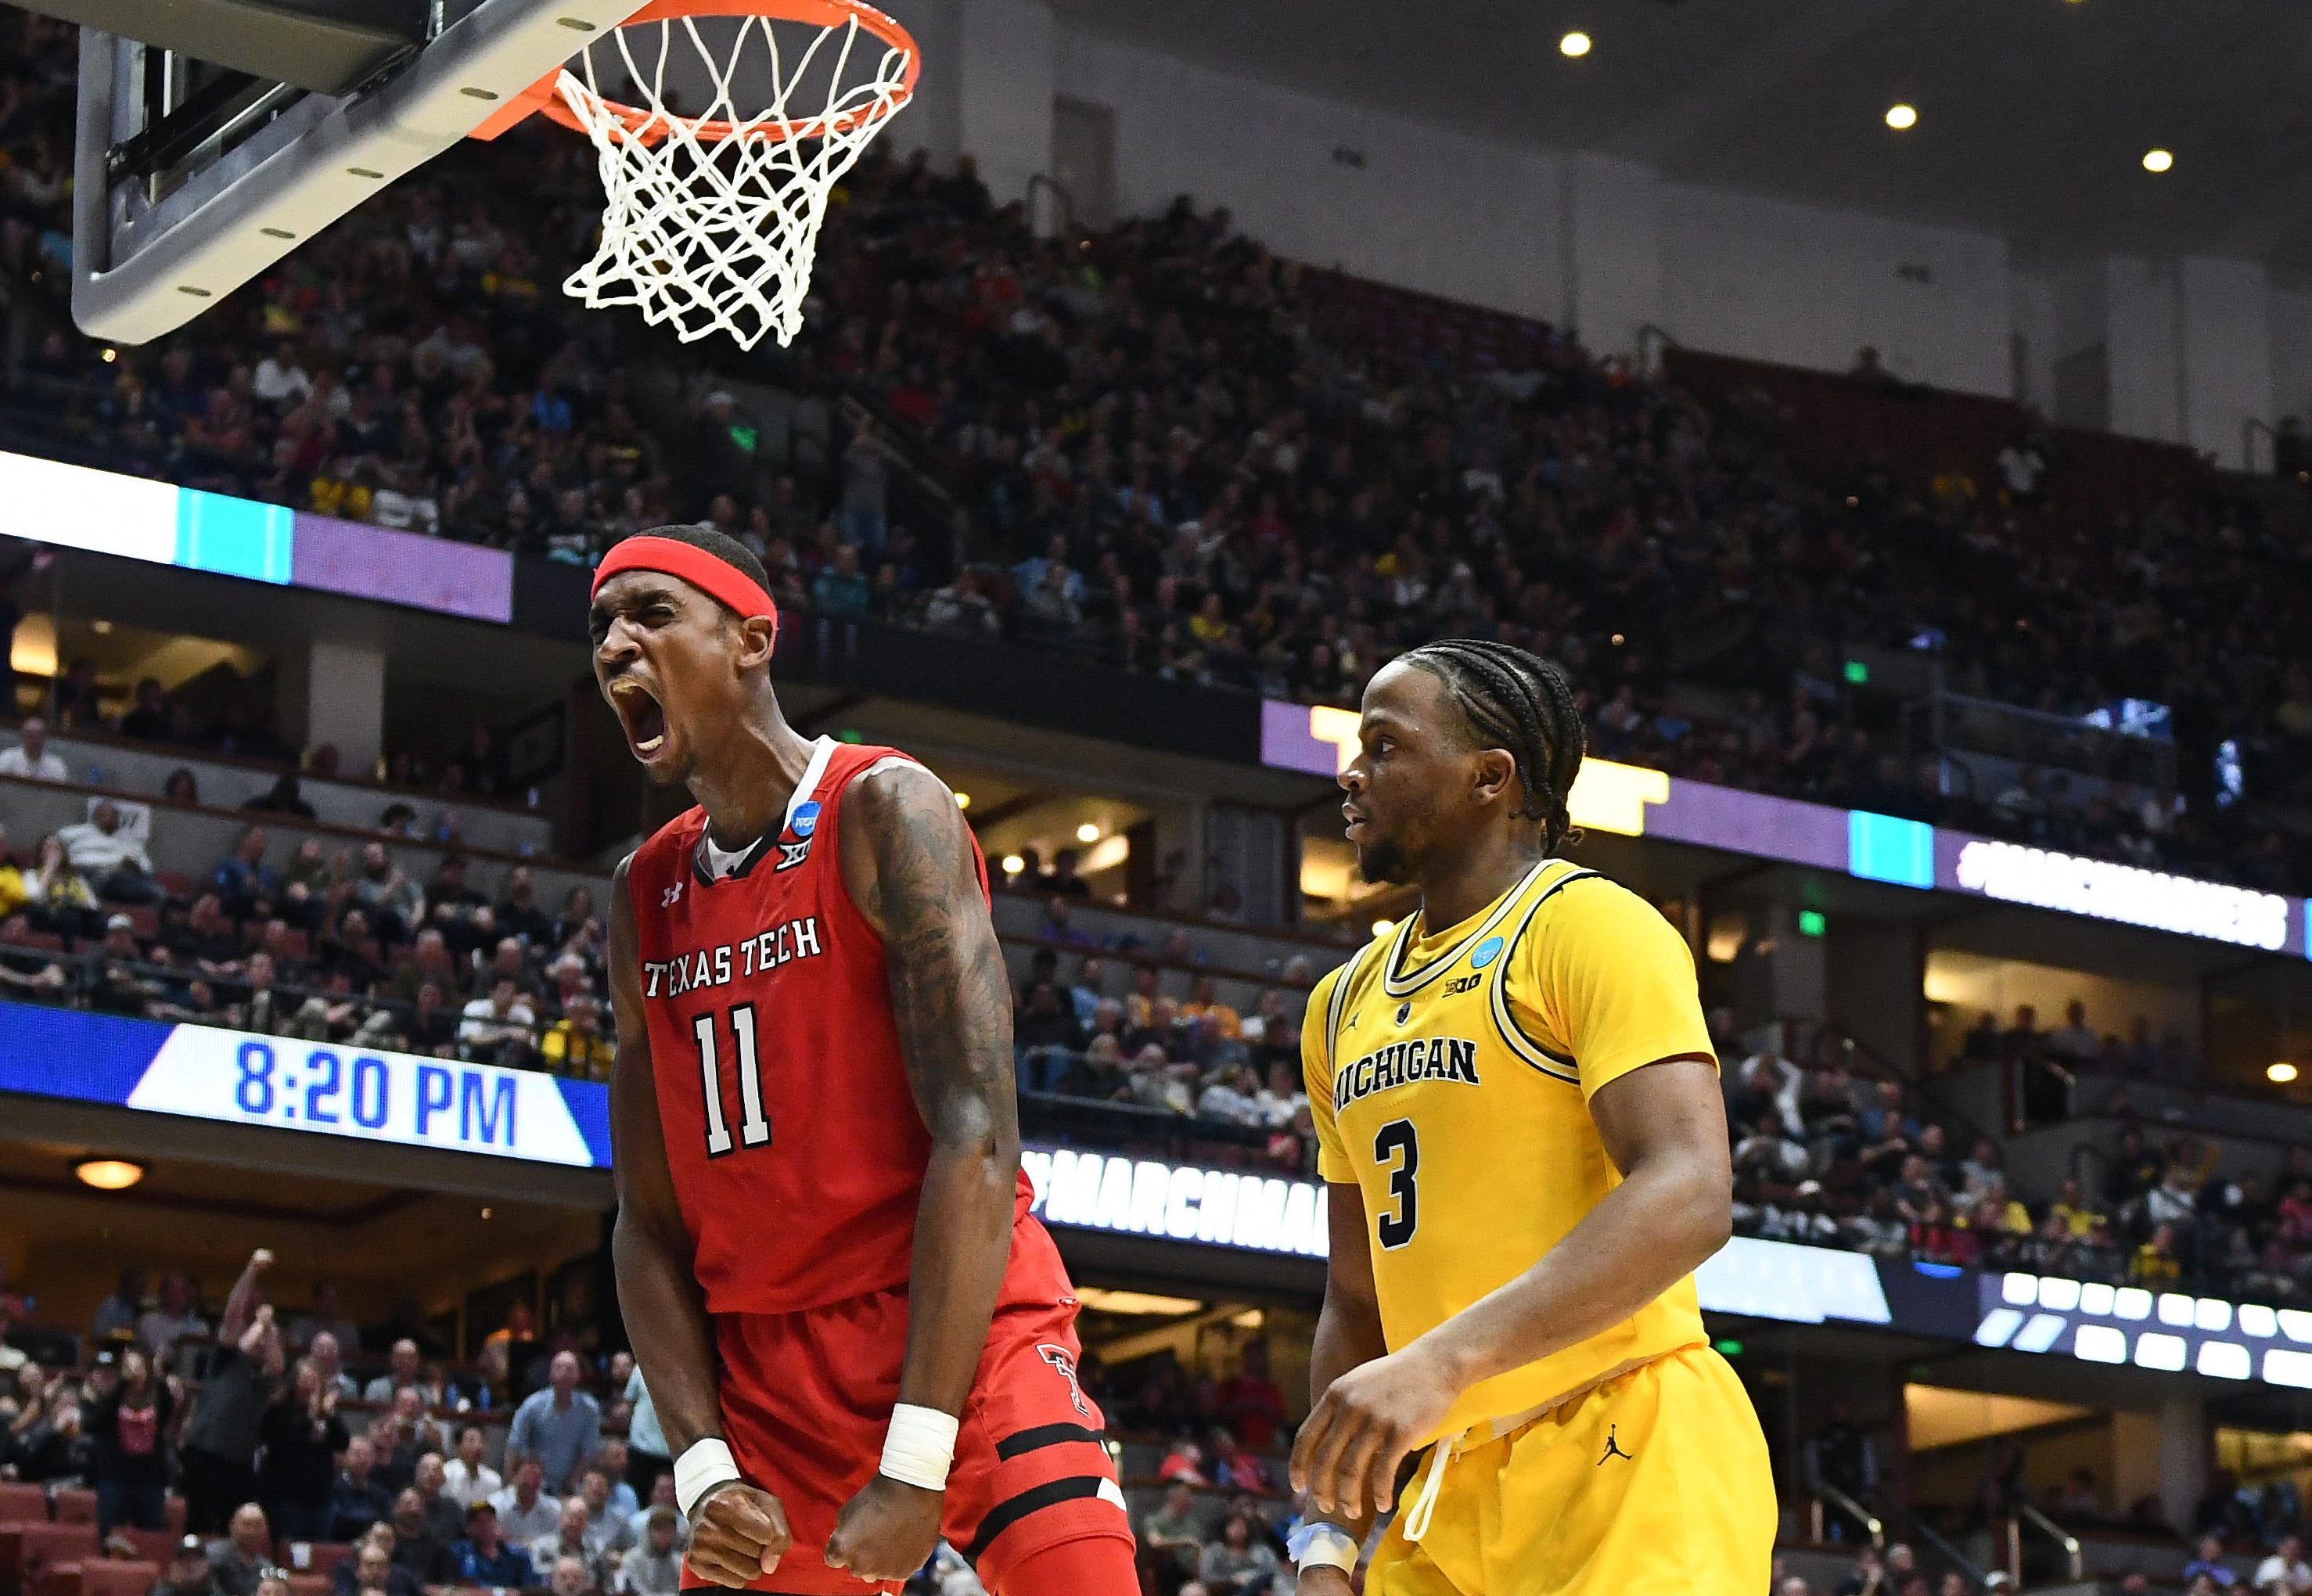 Sweet 16: Texas Tech Red Raiders forward Tariq Owens shouts after he scores a basket against the Michigan Wolverine.